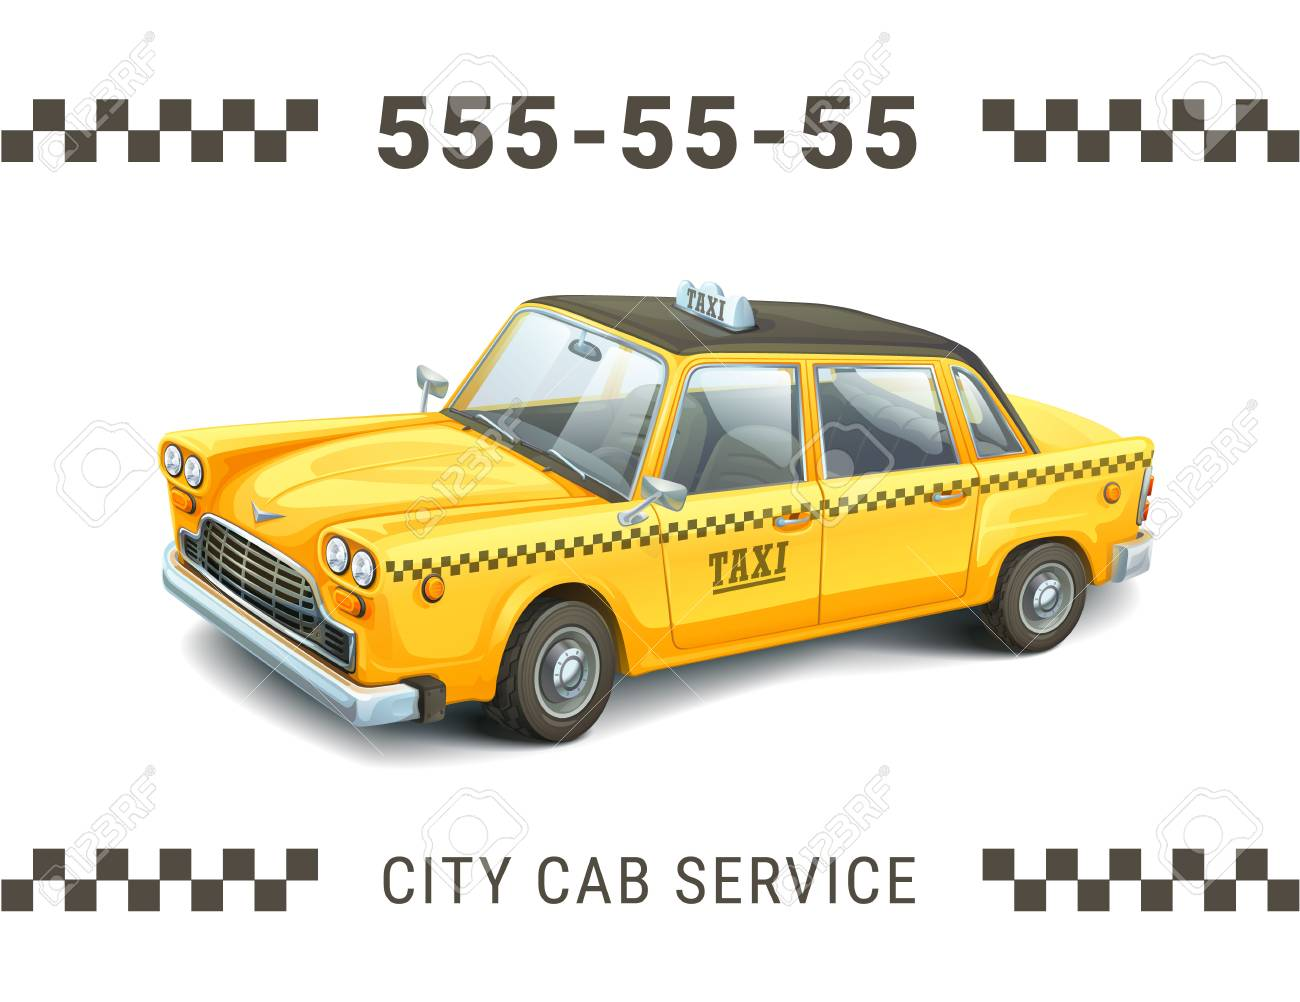 Taxi Service Design. Detailed Illustration Of Yellow Taxi Car ...